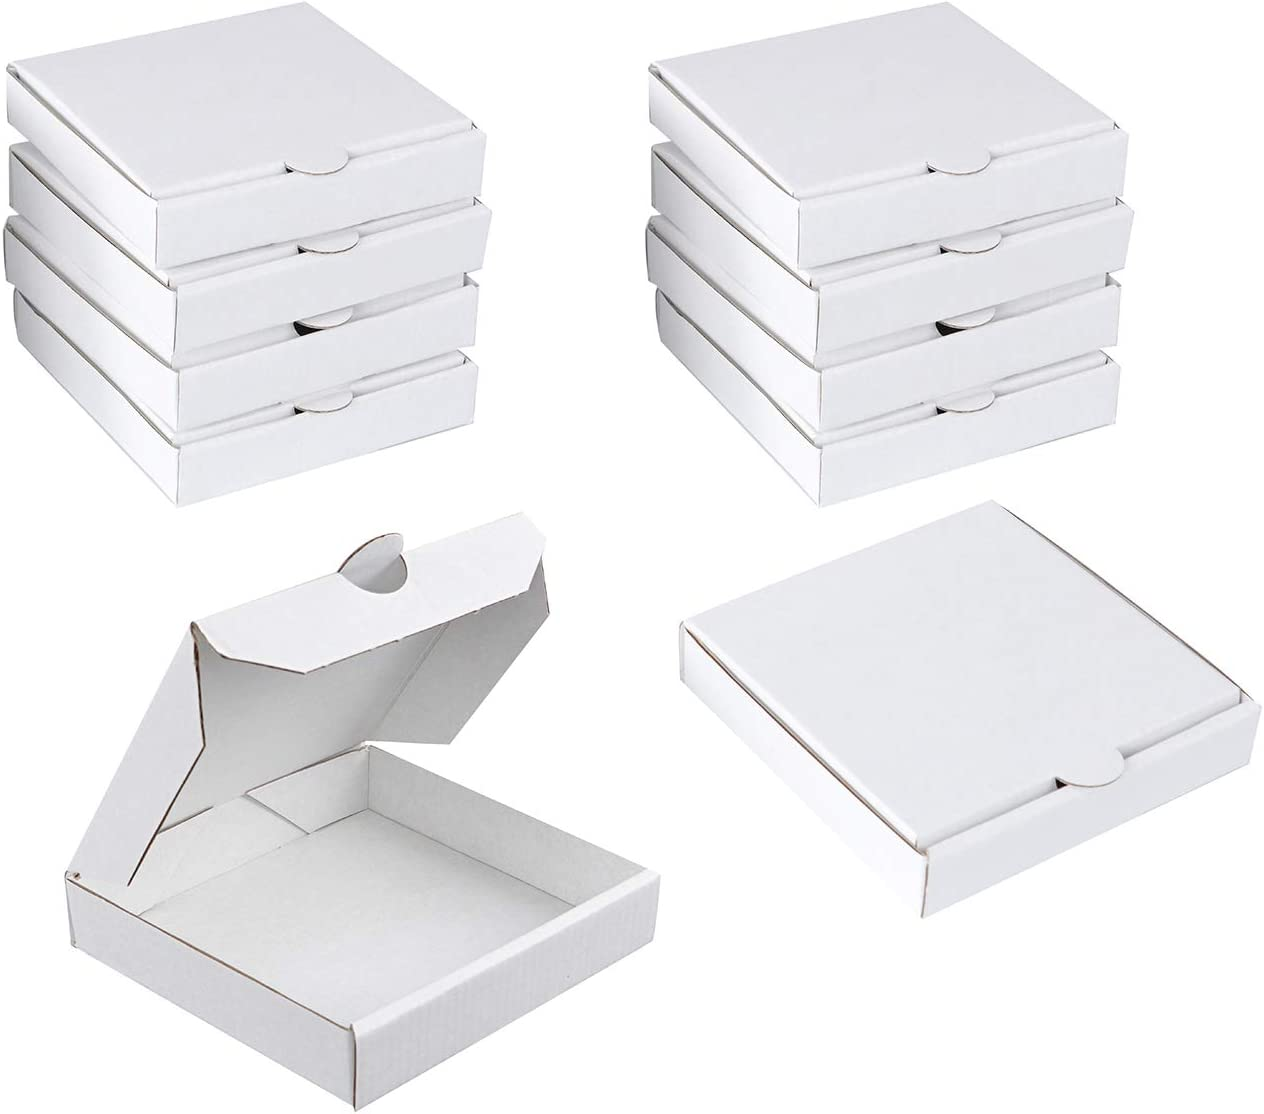 Spec101 White Mini Pizza Boxes, 5 Inch for Cookies, Party Favor, Craft - Food Safe Miniature Cardboard Box 10-Pack